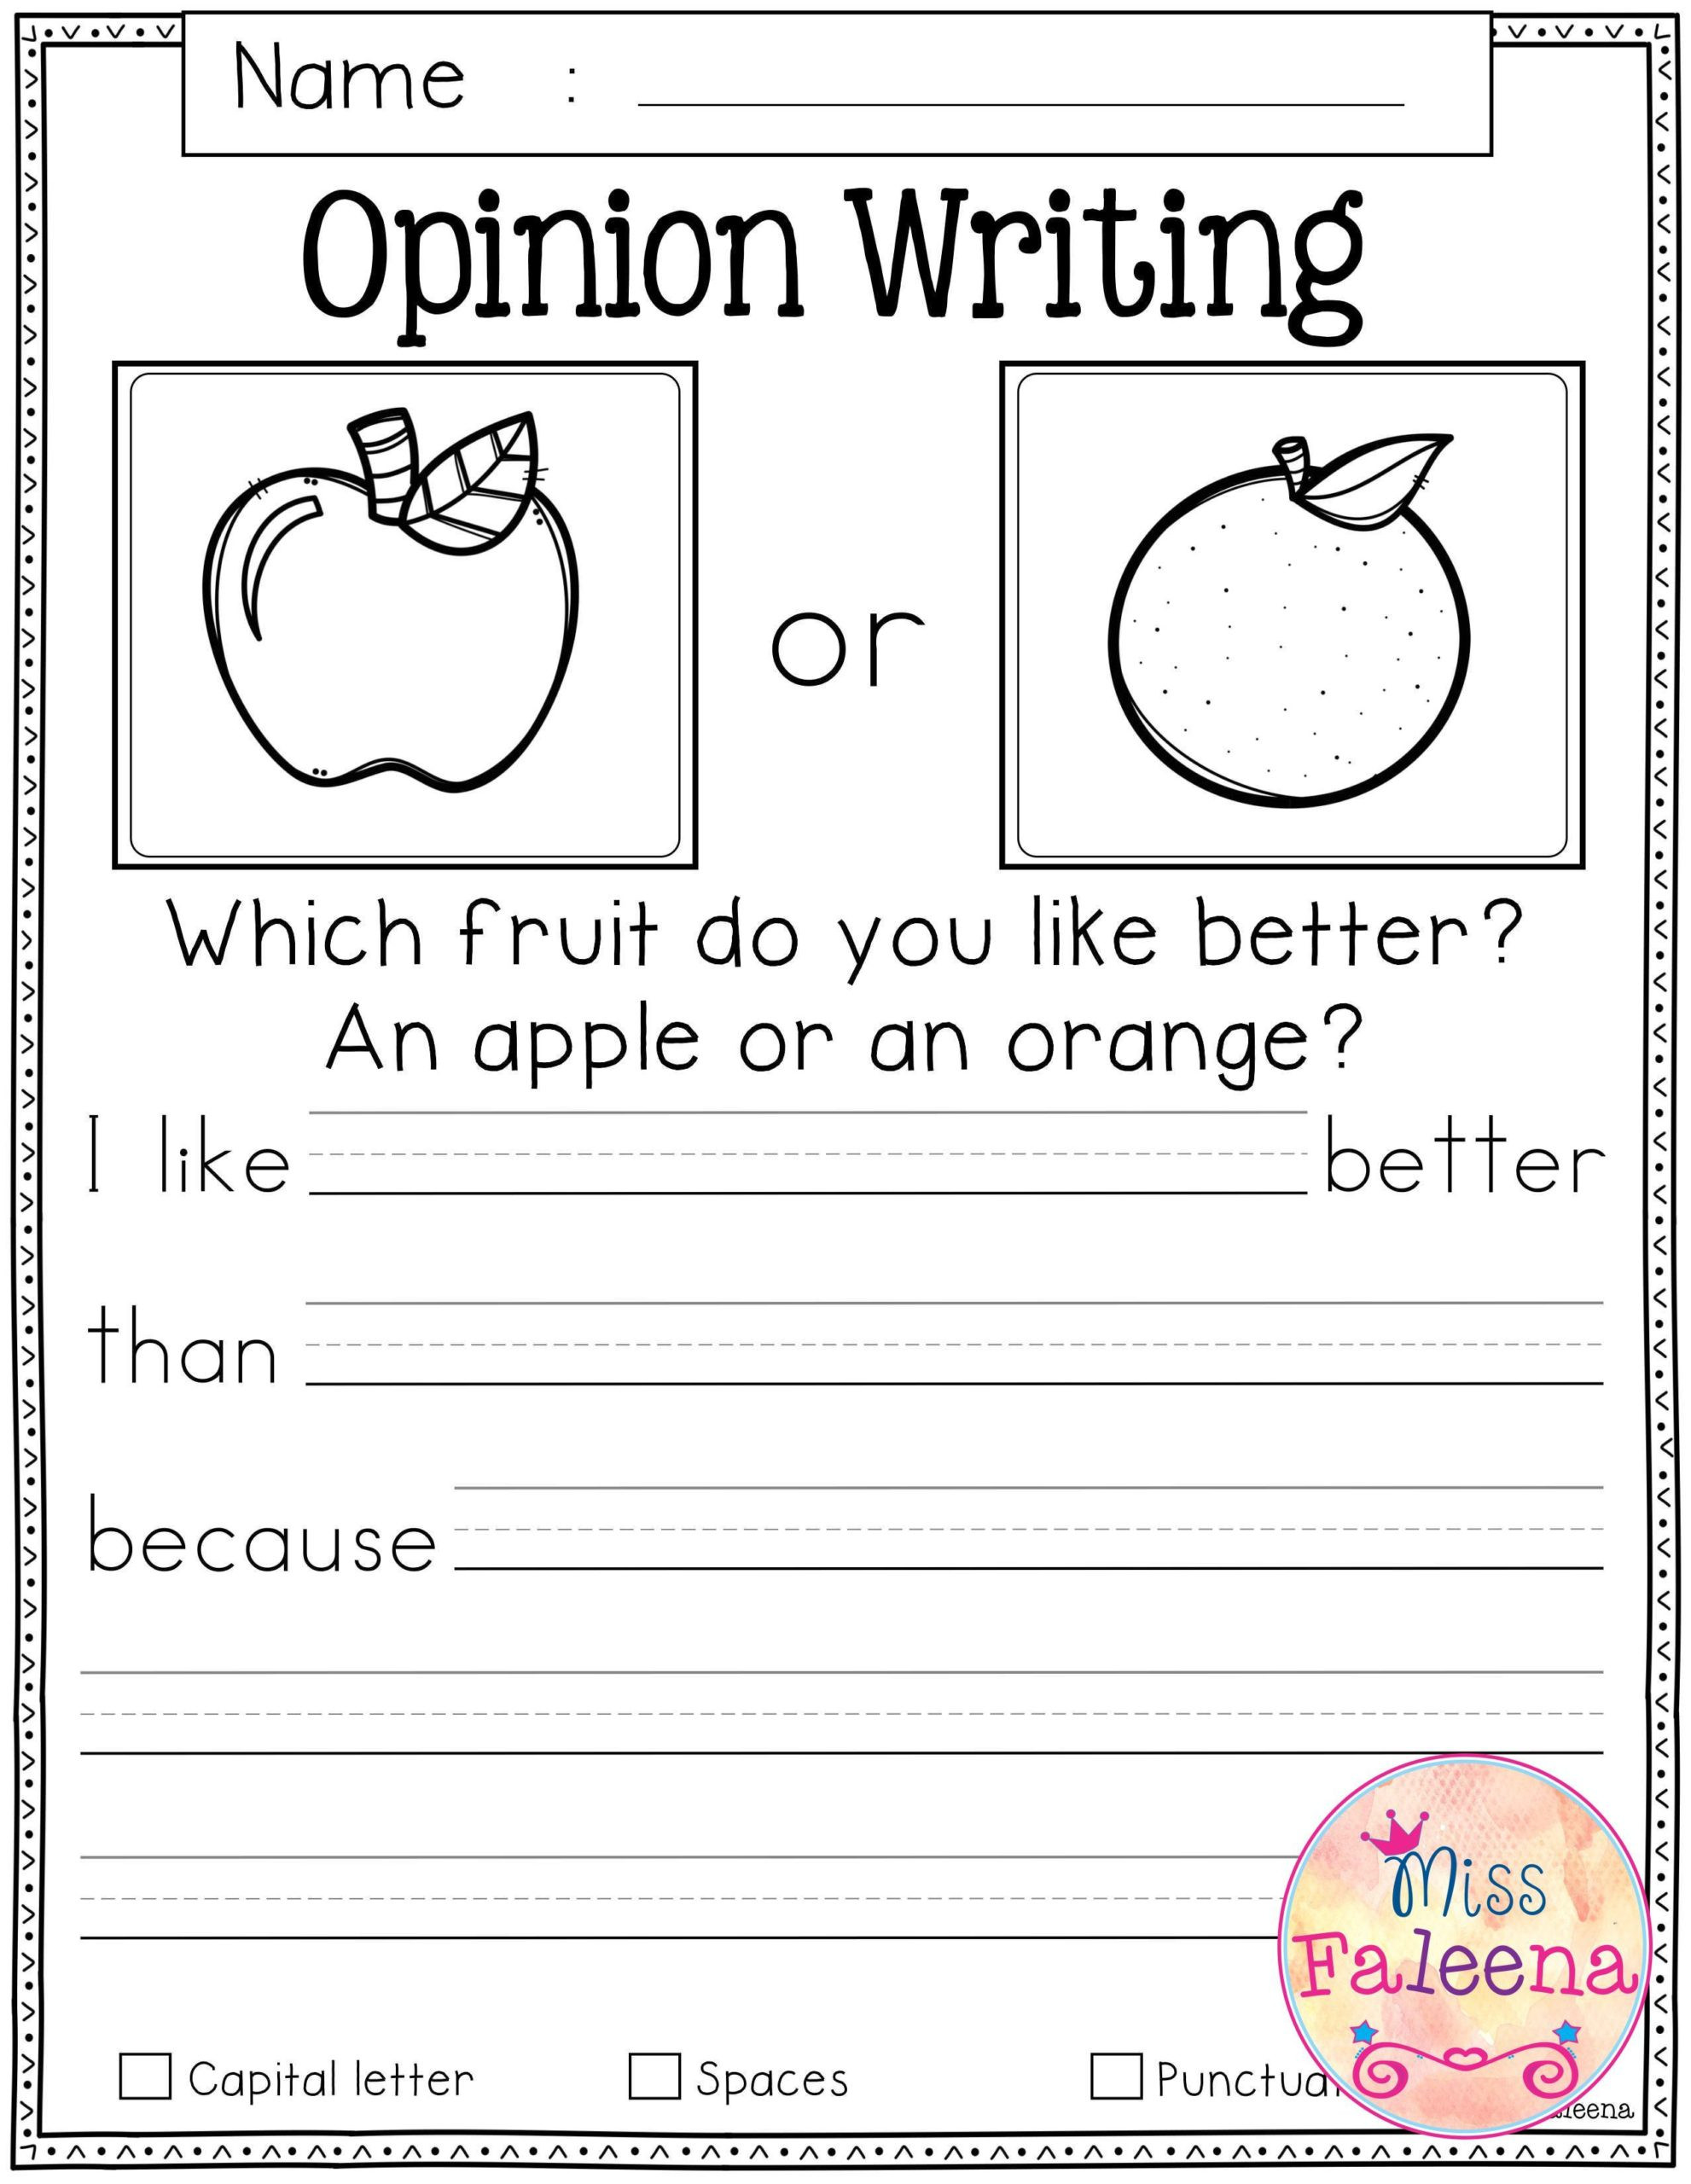 Worksheets for First Grade Writing Math Worksheet 60 Free Printable Writing Worksheets for